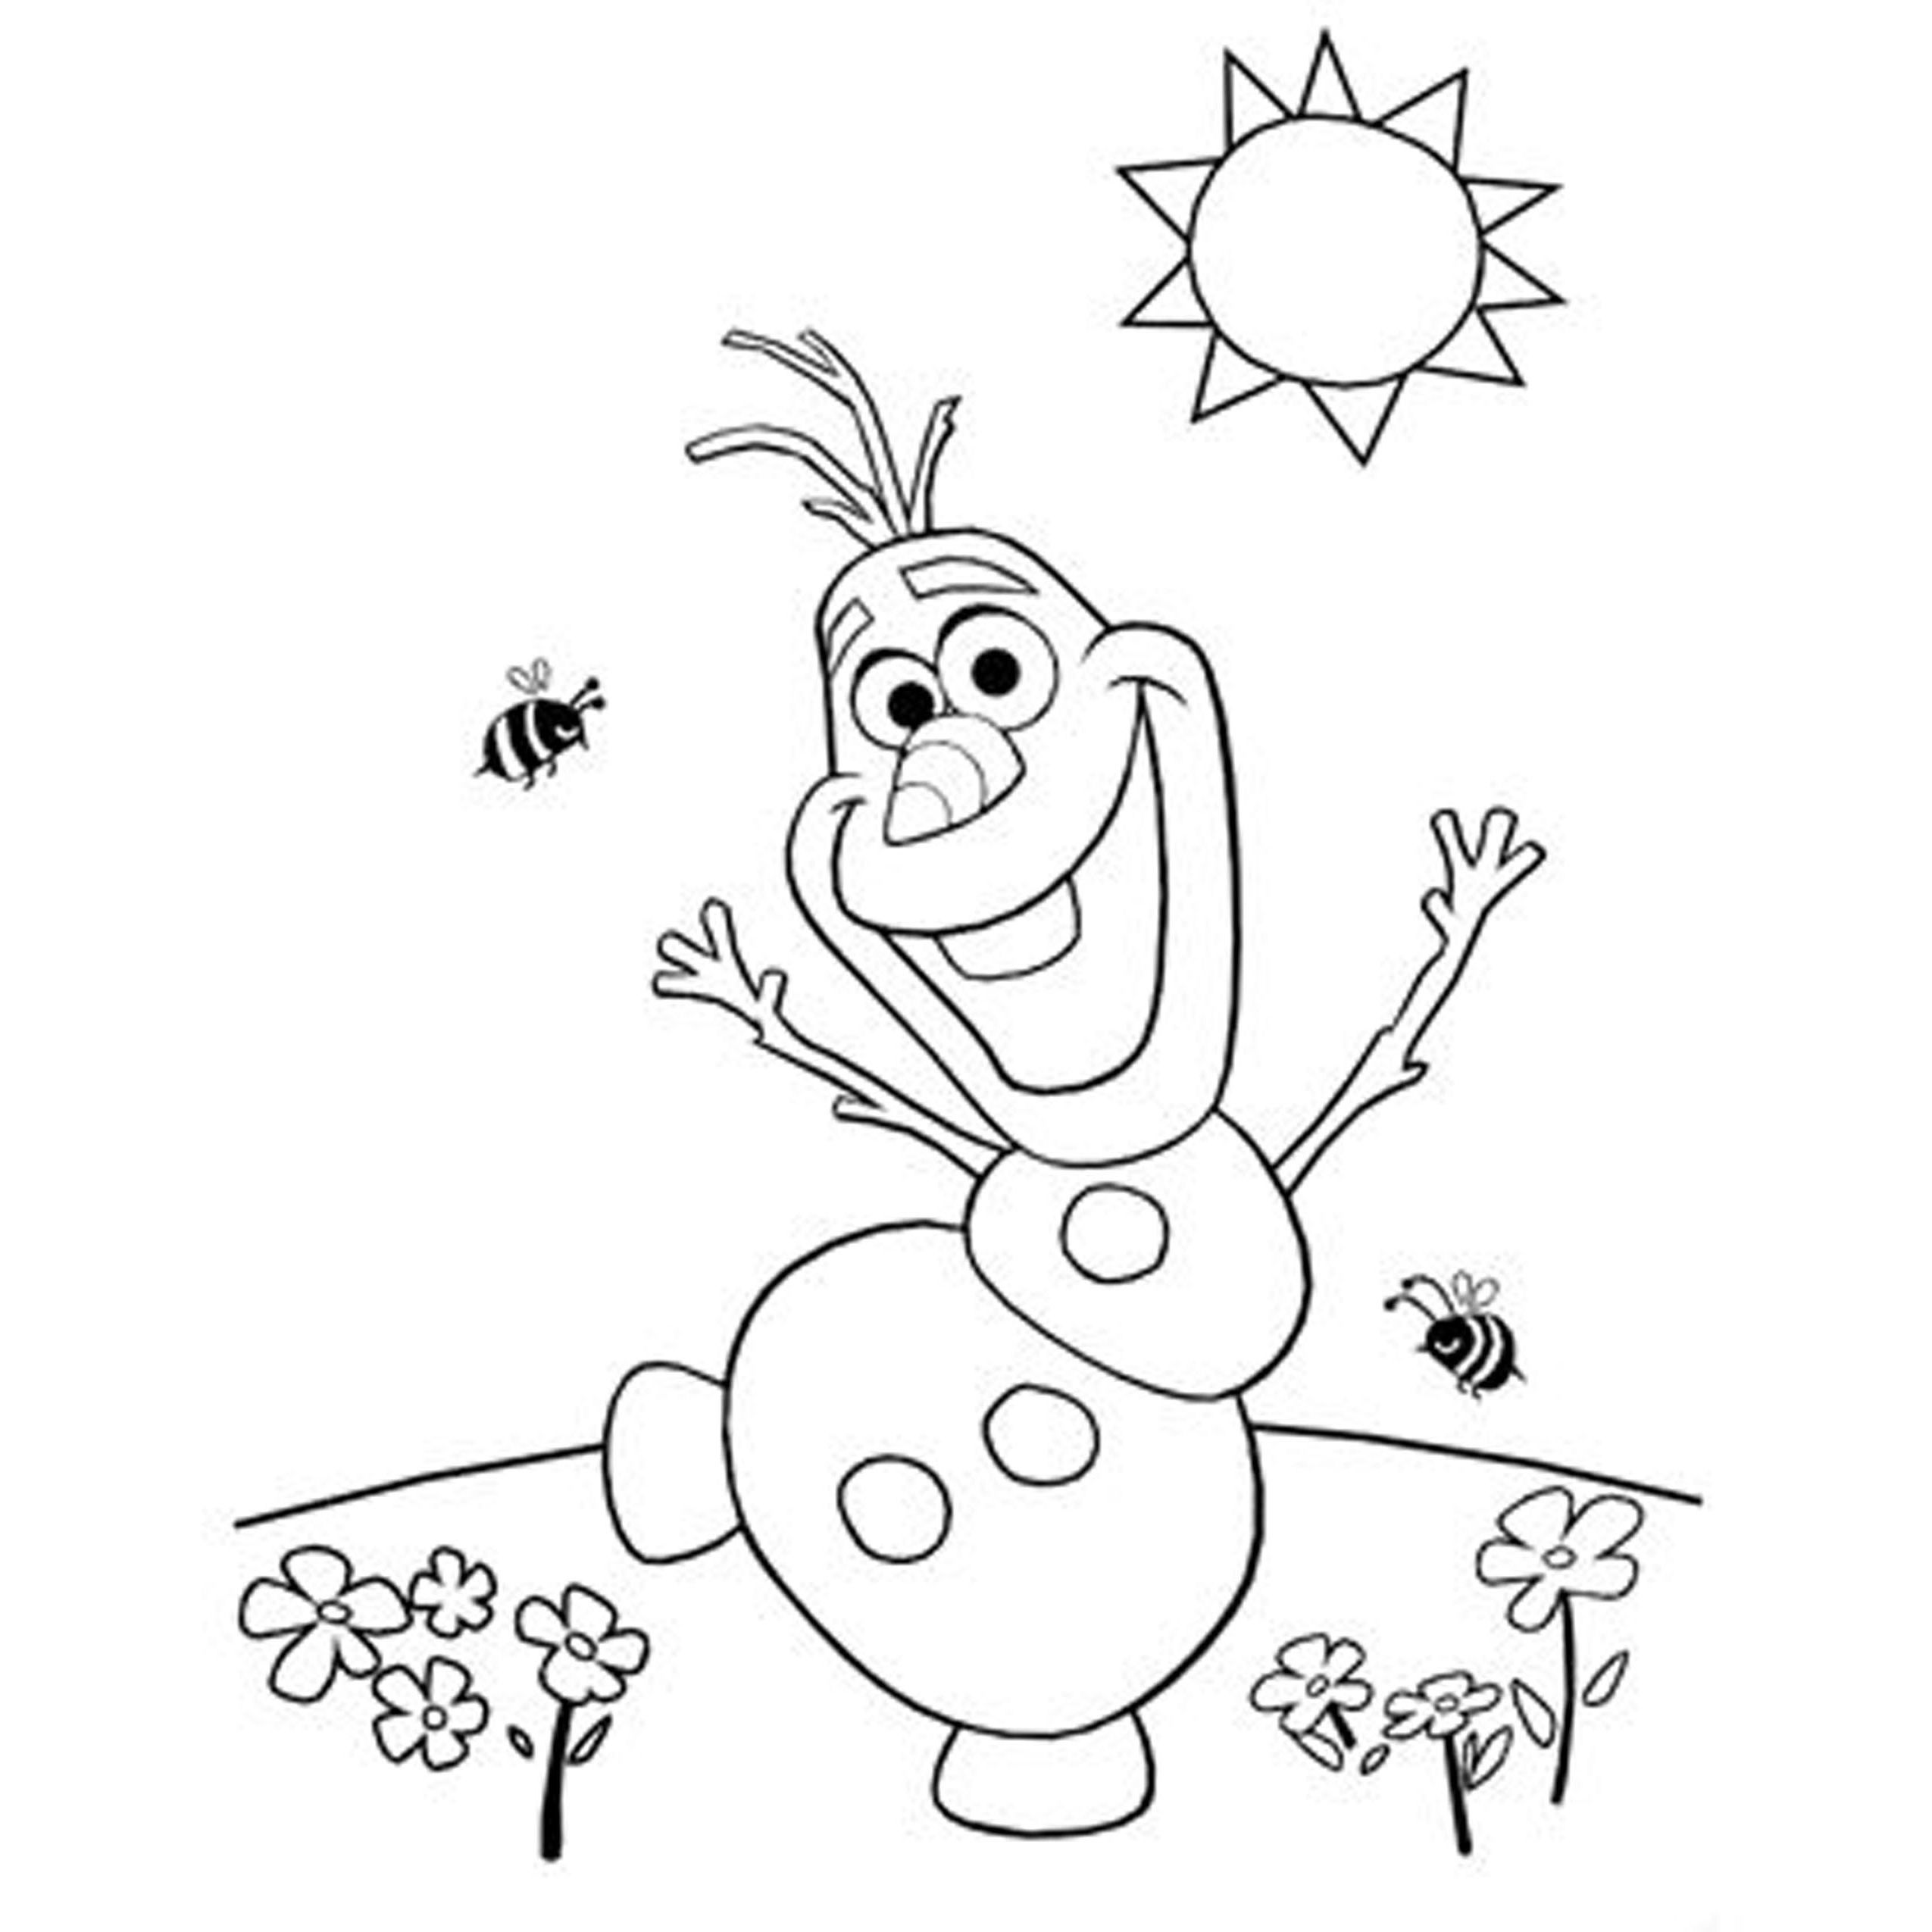 olaf coloring home kijglxbzt hard disney pictures to color creative thanksgiving cards coloring pages Olaf Coloring Page